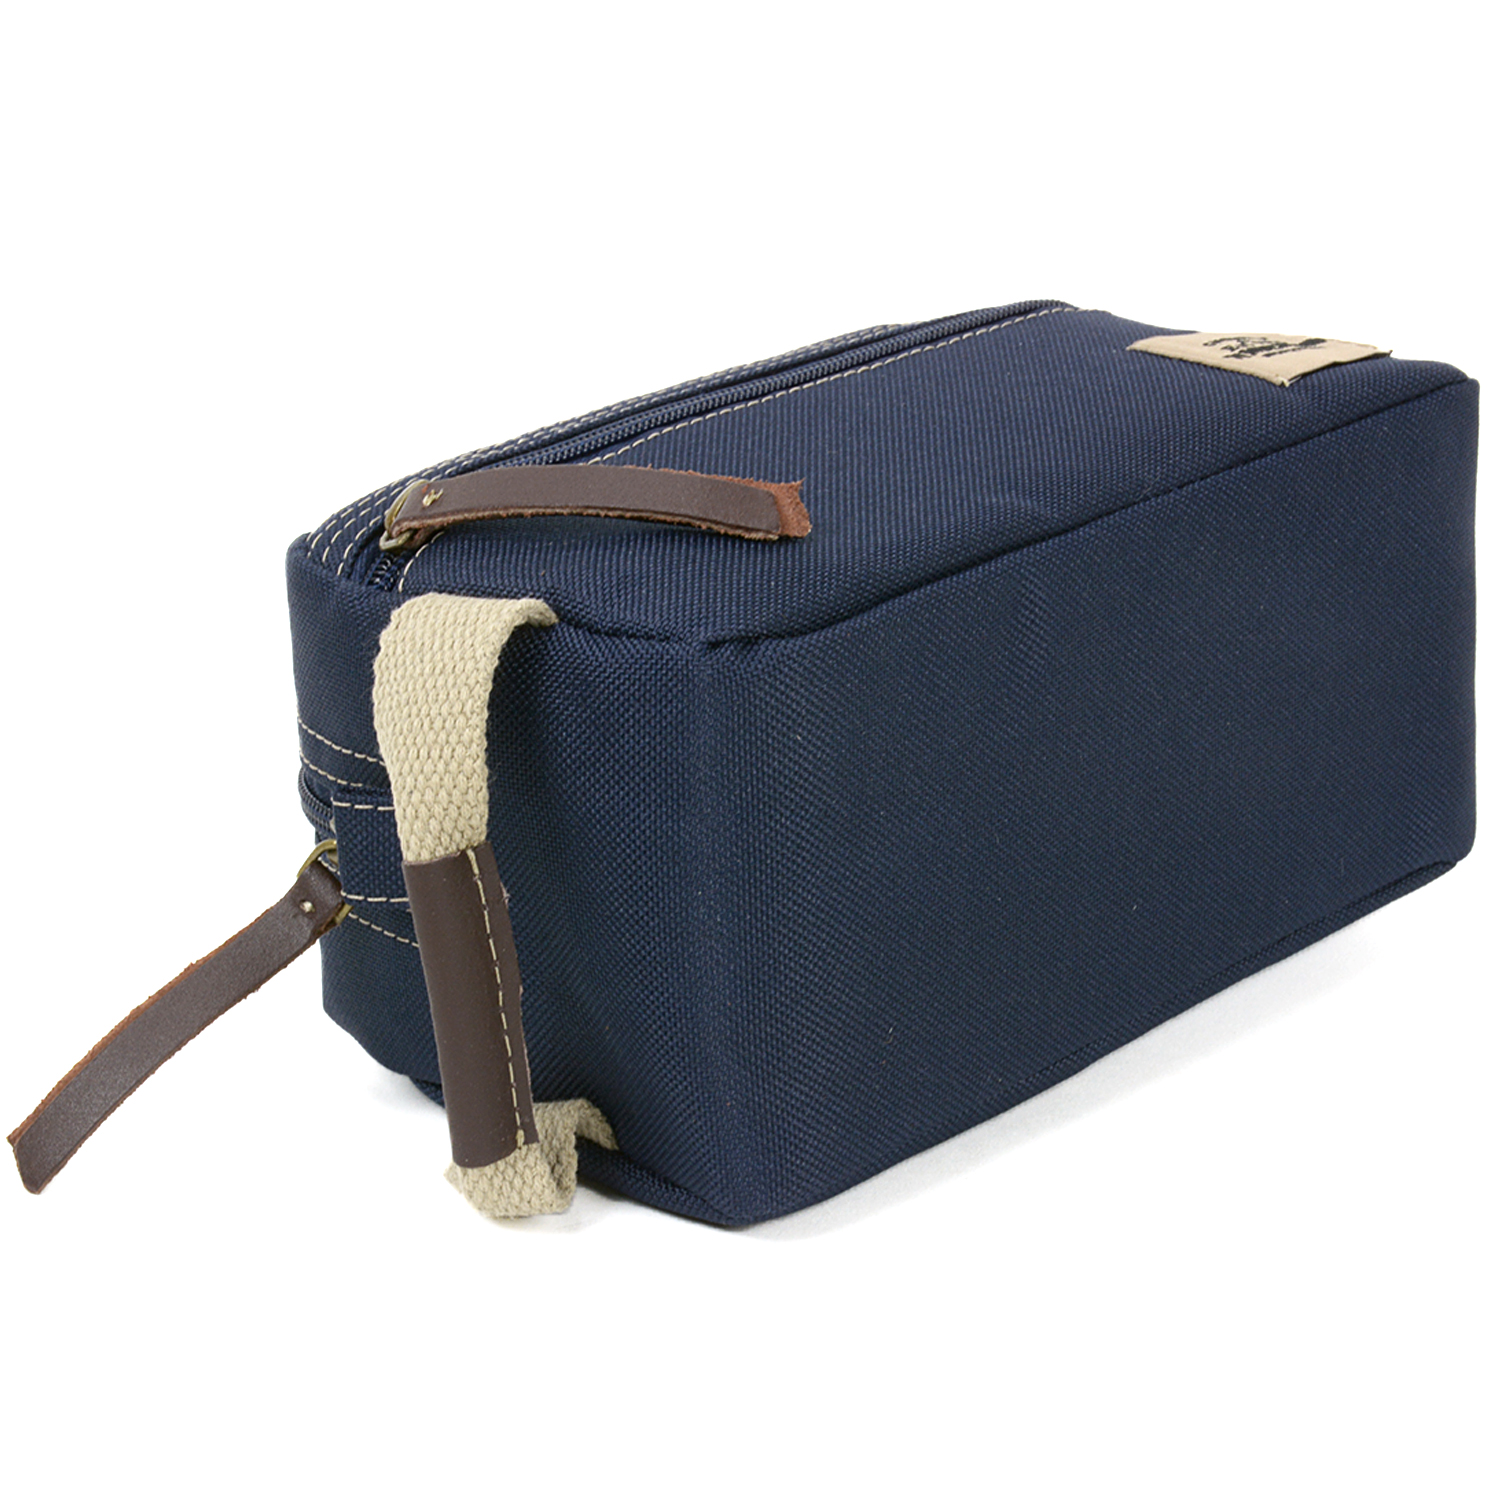 Timberland Travel Kit Case